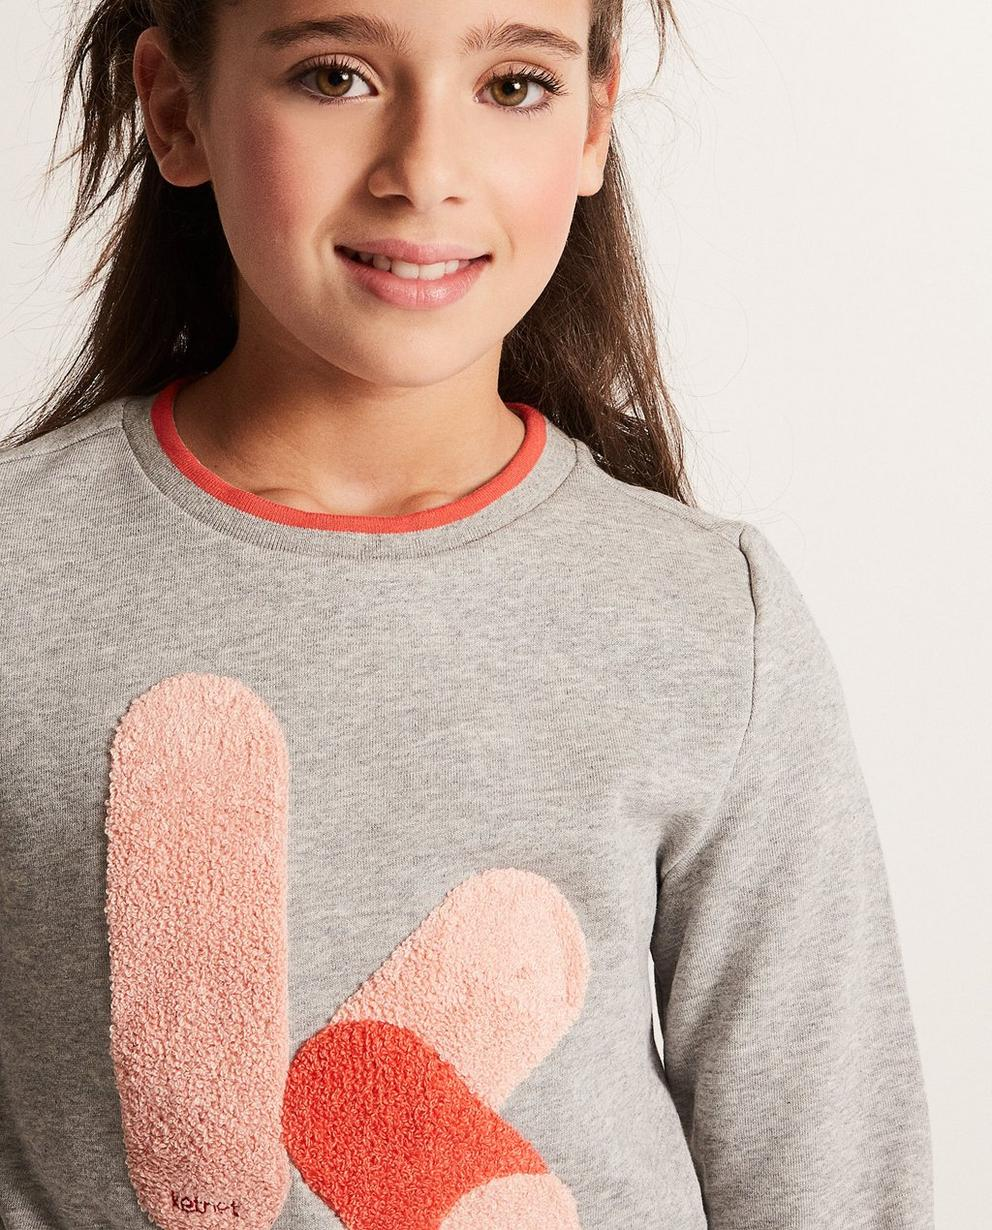 Sweater - Blassgrau - Sweater mit Bouclé-Print